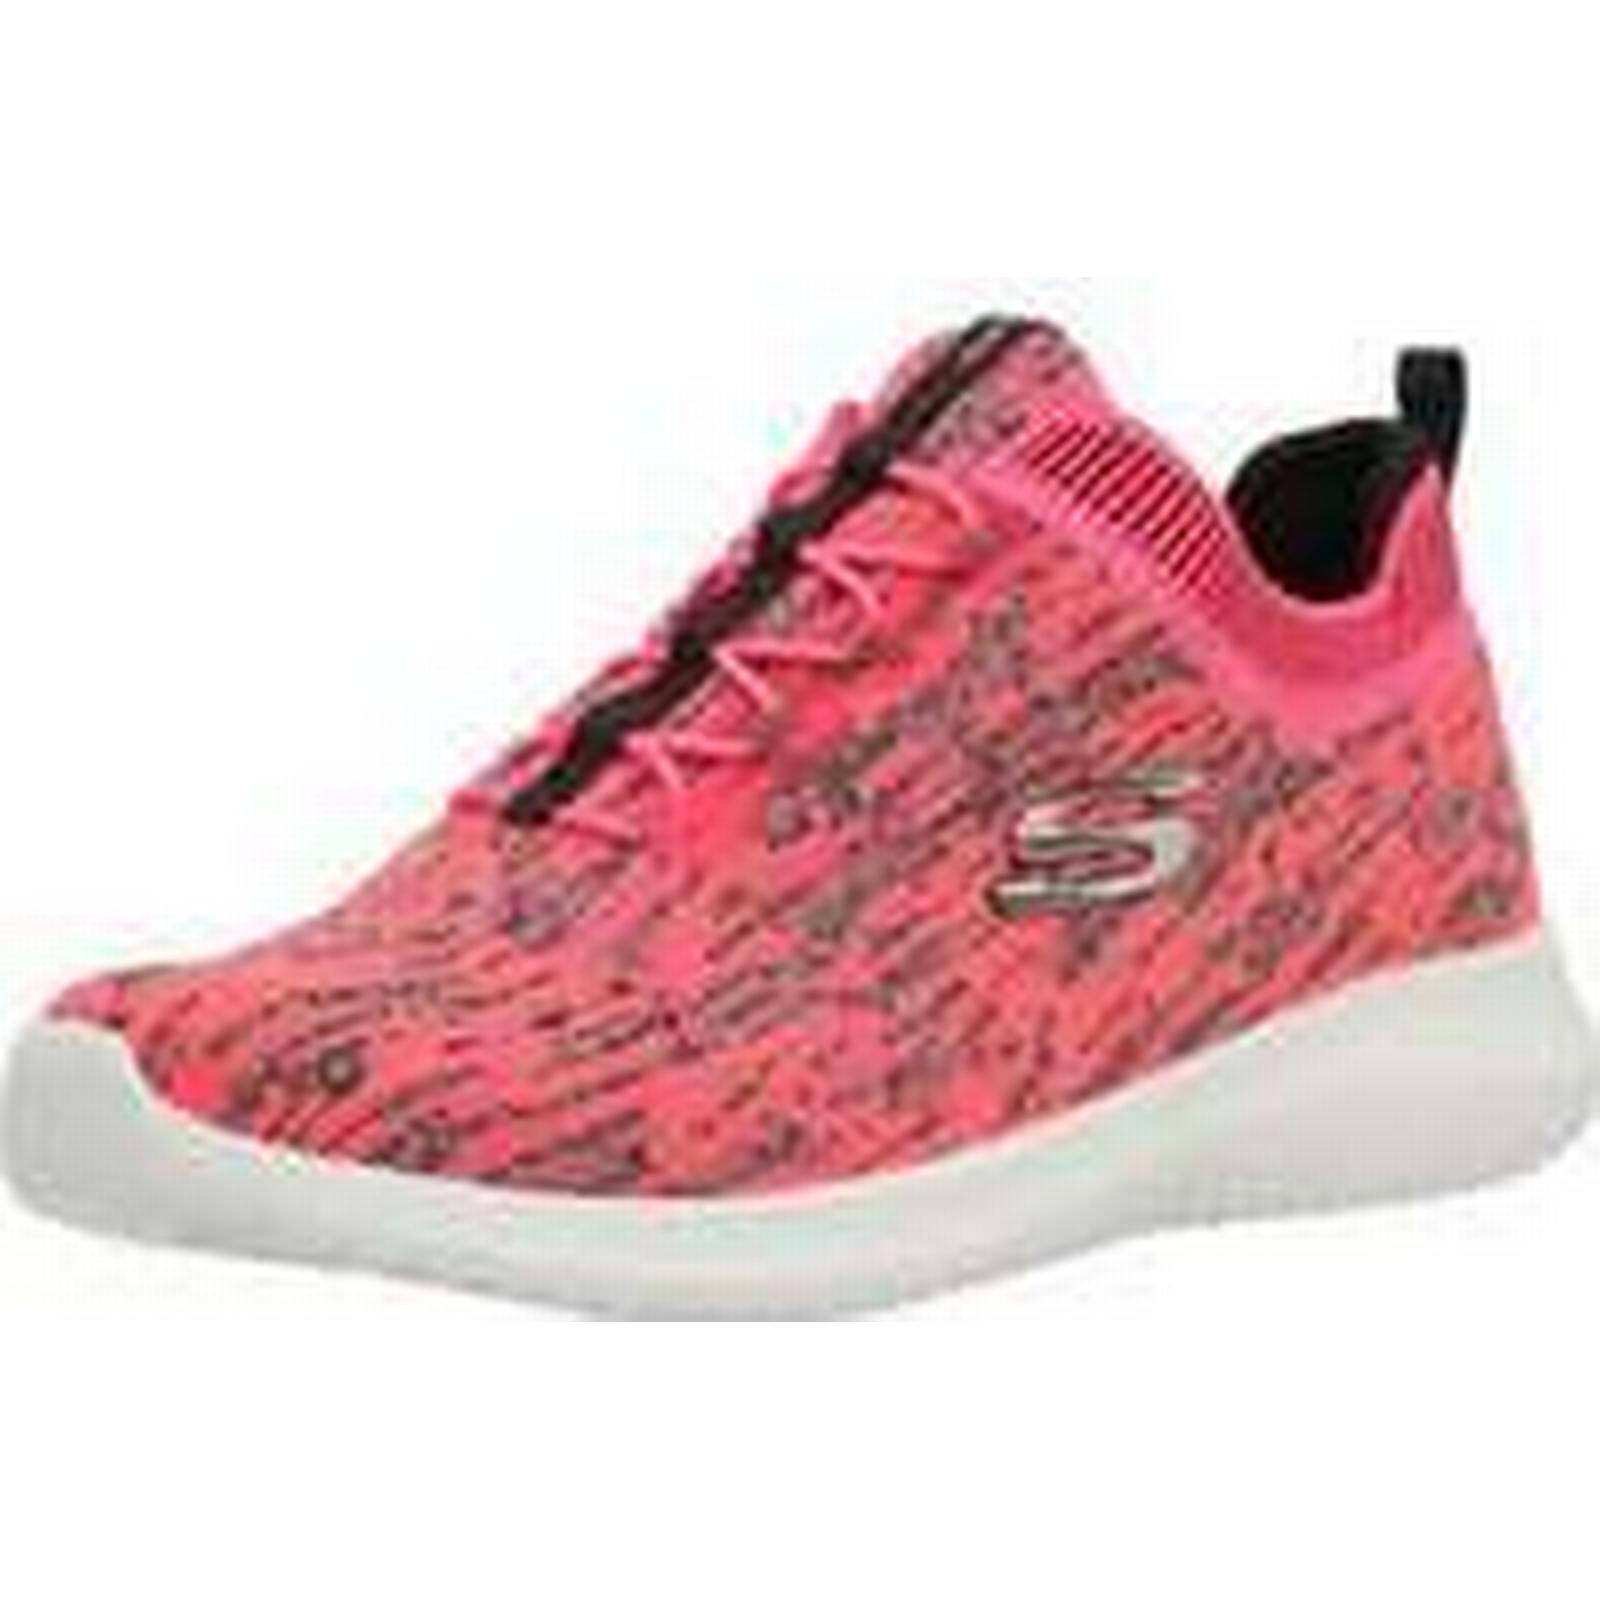 spartoo.co.uk spartoo.co.uk spartoo.co.uk sketchers ultra - flex horizon prometteur femmes & #  ; s Chaussure s formateurs en rose 2a20b6